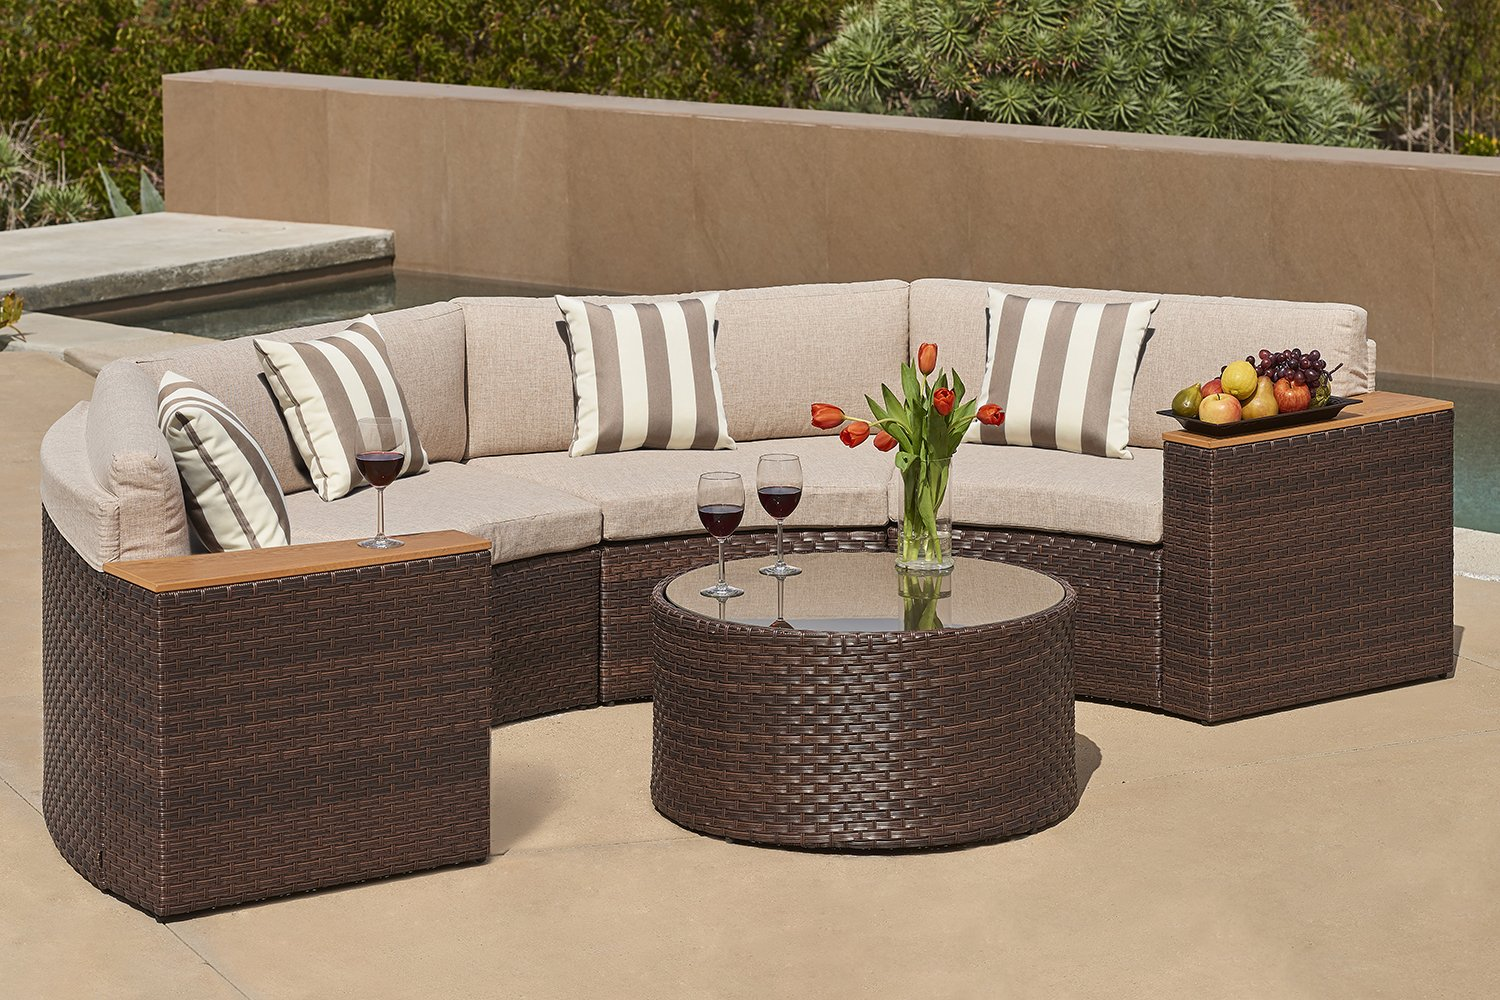 Solvista Outdoor 5-Piece Half-Moon Crescent Sectional Furniture Set All Weather Brown Wicker with Light Brown Waterproof Cushions & Sophisticated Glass Coffee Table | Patio, Backyard, Pool